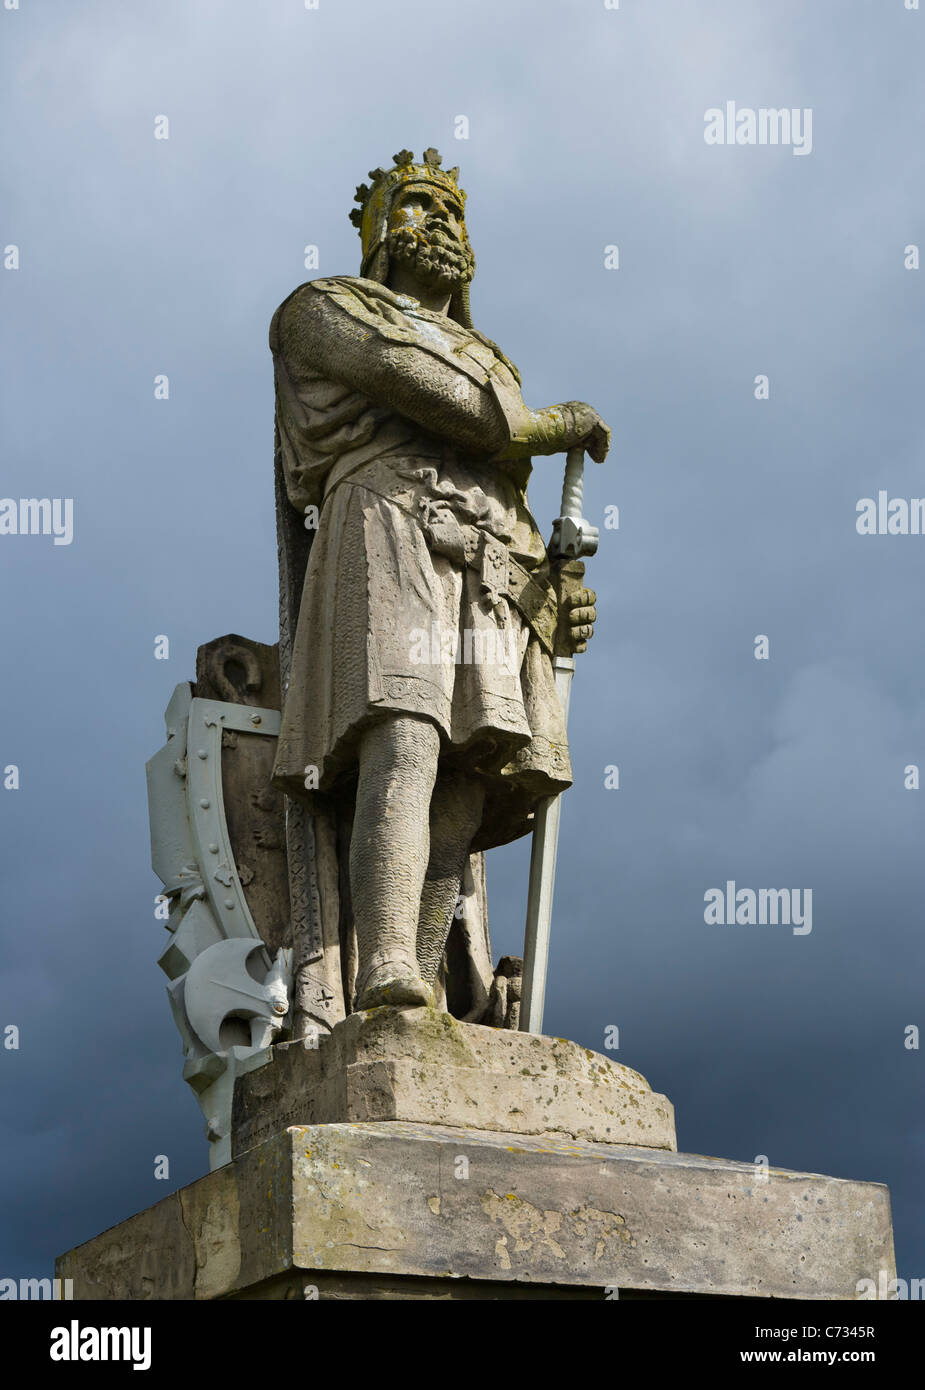 Statue of Robert the Bruce outside Stirling Castle, Stirling, Scotland, UK - Stock Image